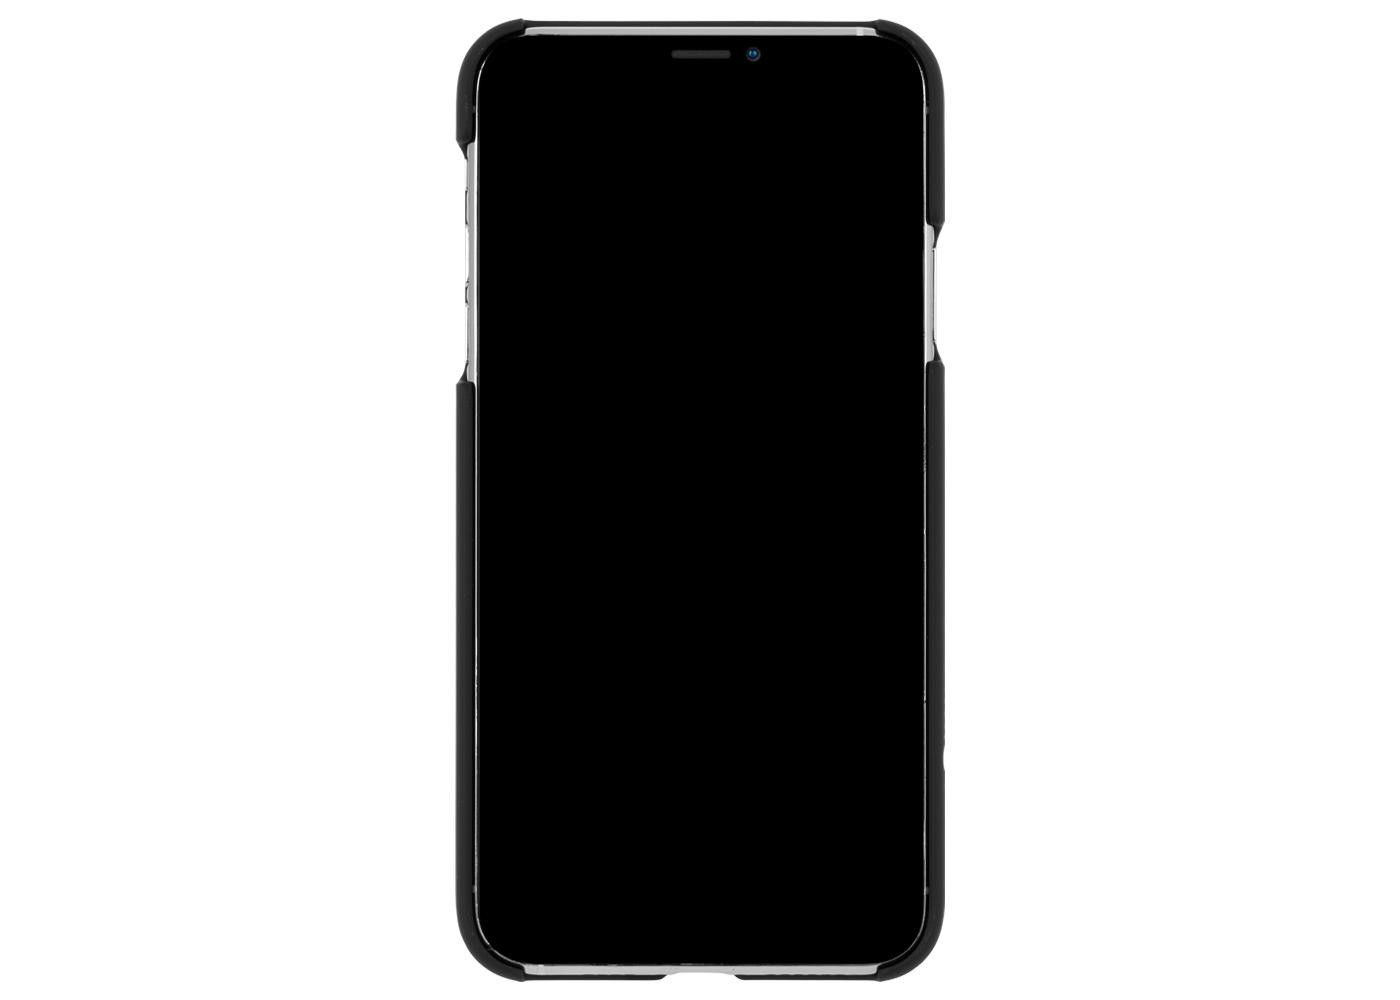 Casemate iphone 11 pro max barely there black case